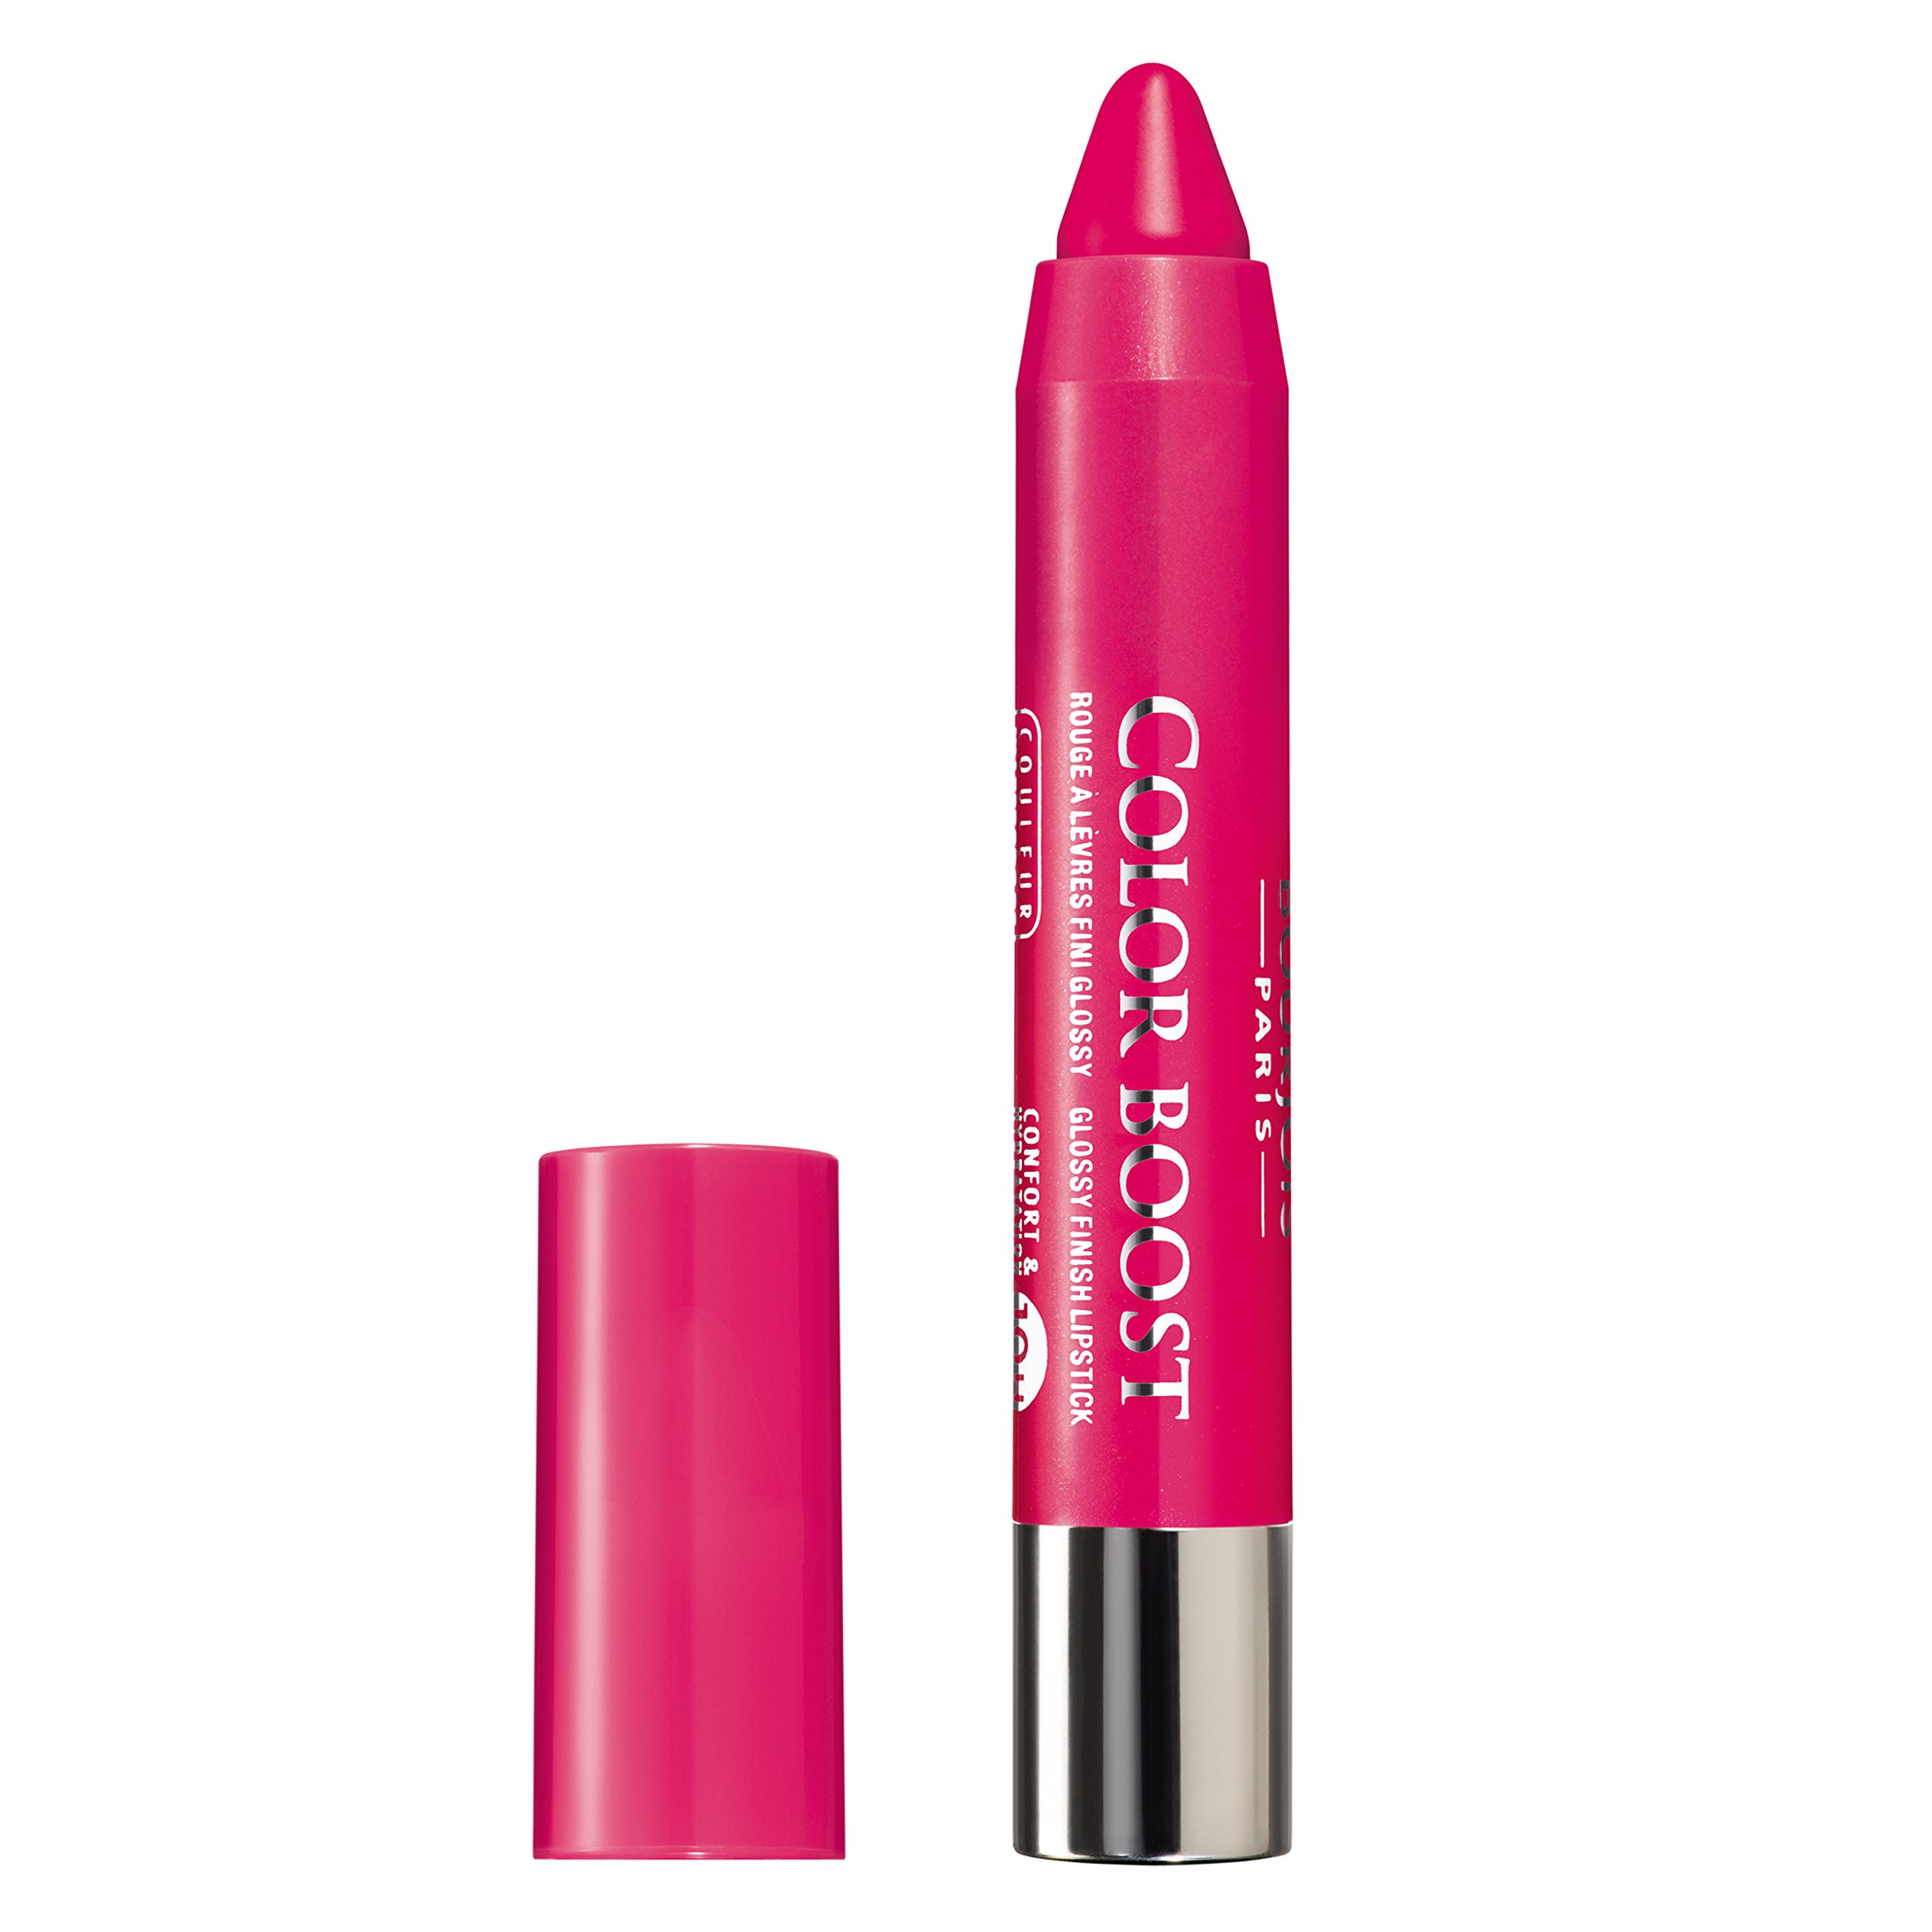 Amazon.com : Bourjois Color Boost Lip Stick Crayon SPF 15 Waterproof ...